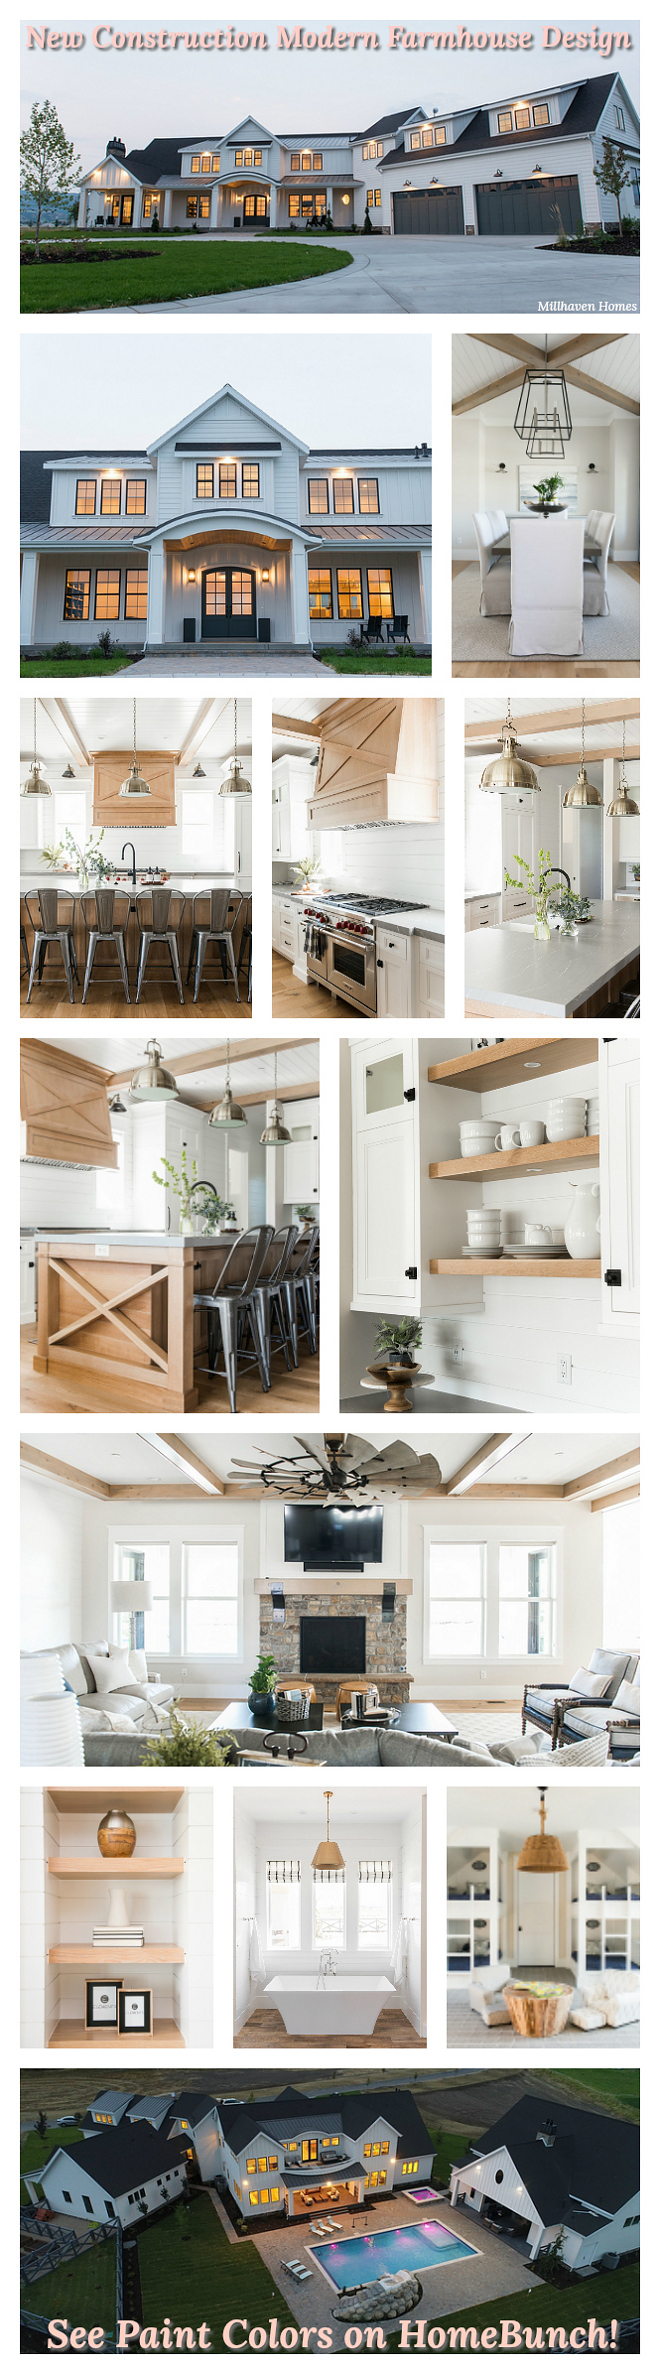 New Construction Modern Farmhouse Design Photos and Paint Colors